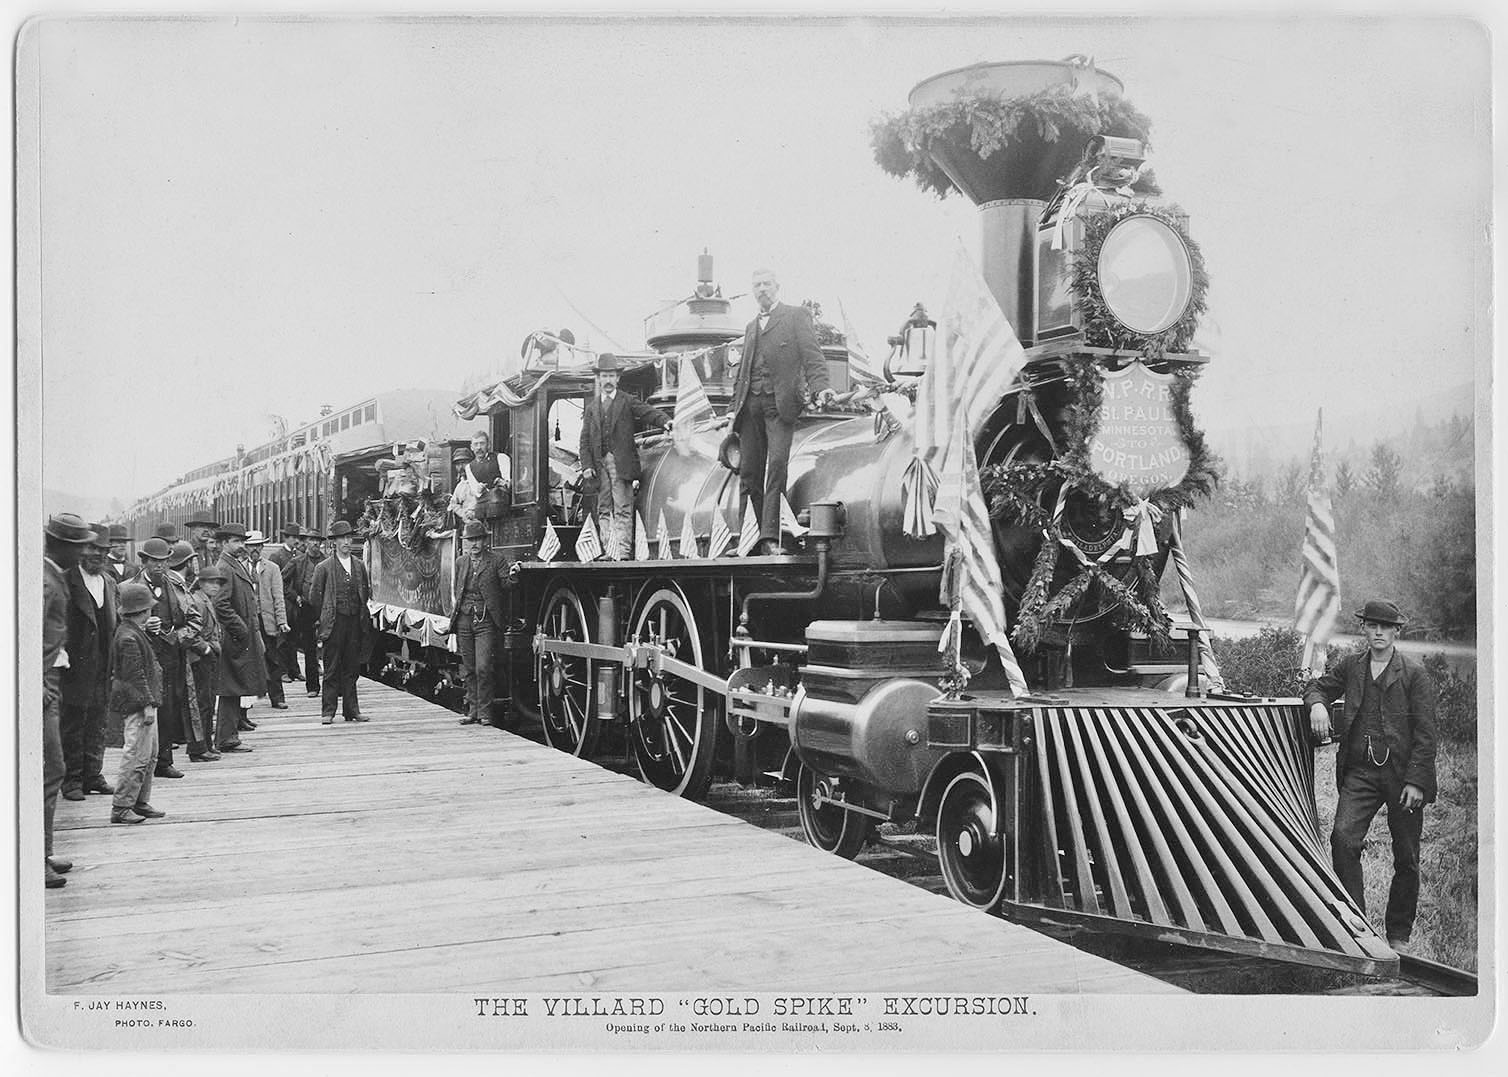 ept. 8th, 1883. Opening of the Northern Pacific Railroad.